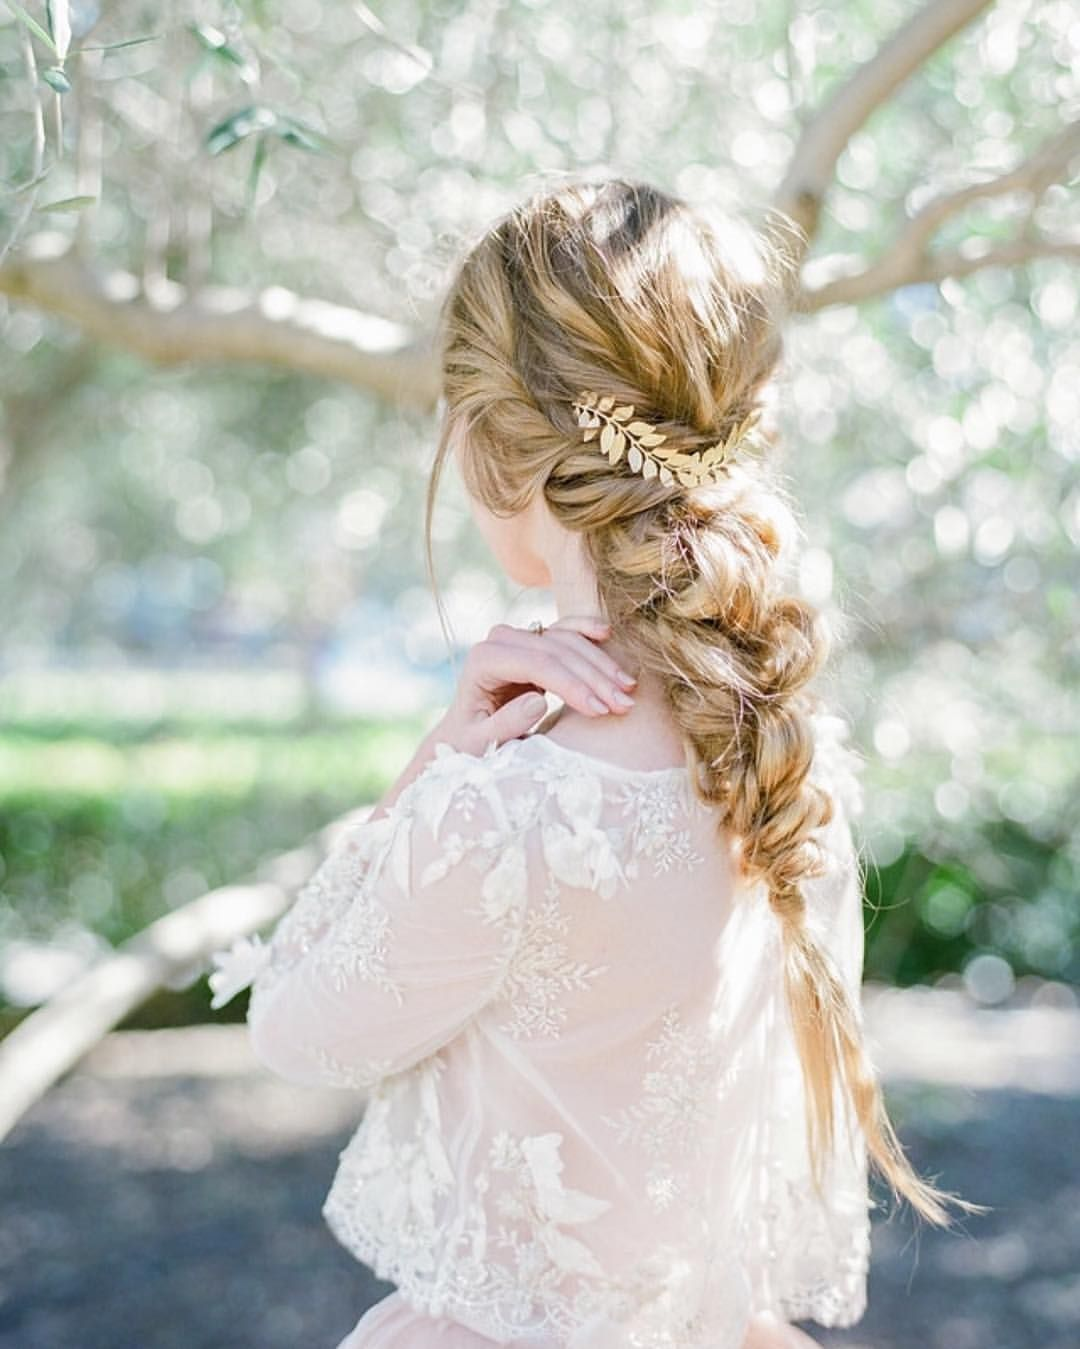 Pin by Gatherie Creative | Cassie Pannier on bridal beauty | Pinterest